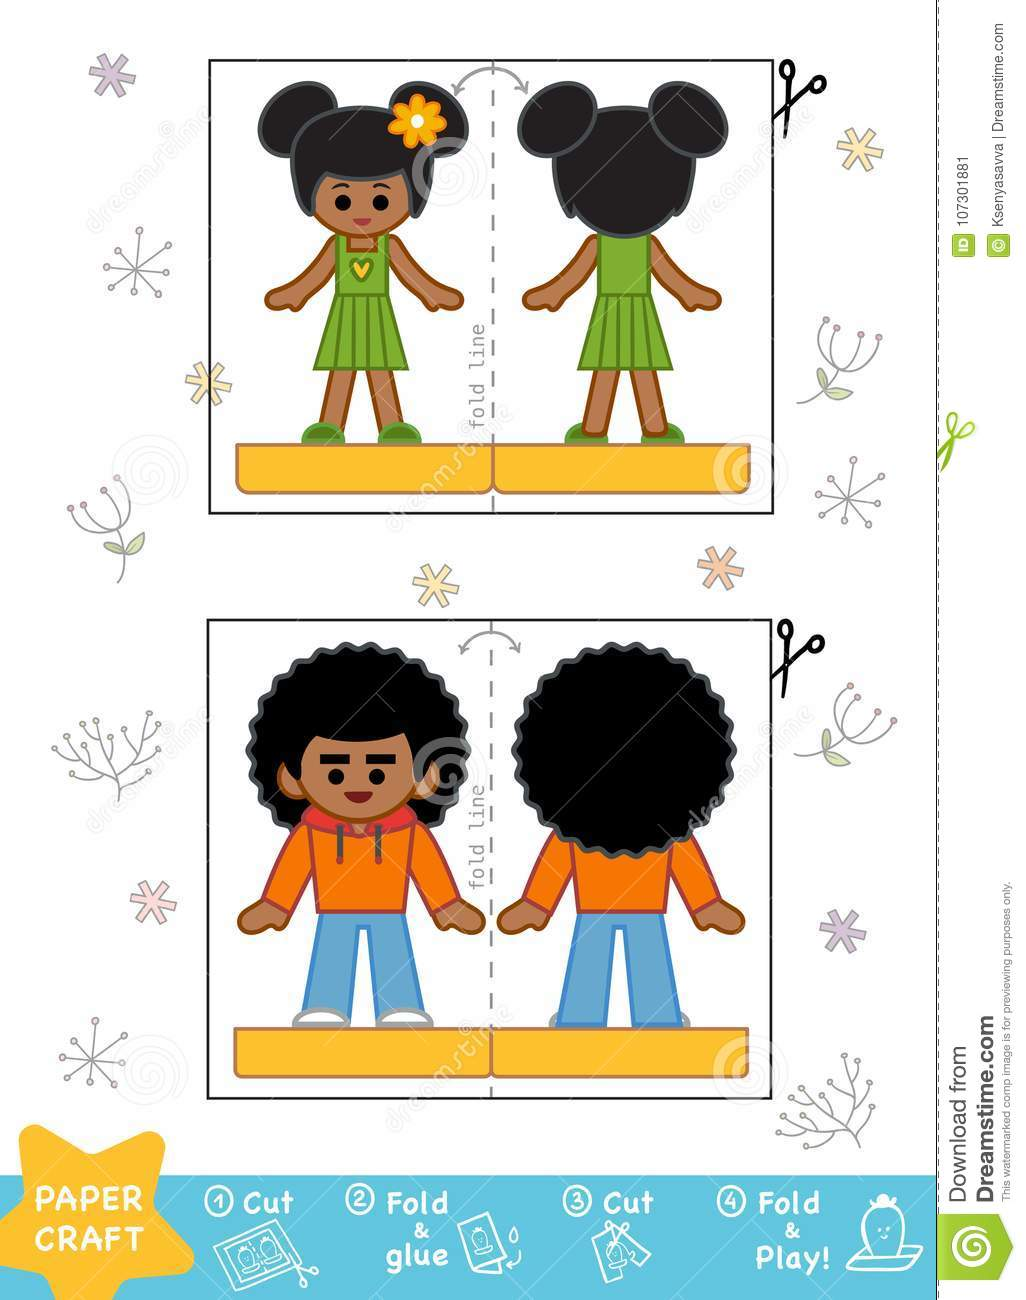 Education Paper Crafts For Children Boy And Girl Stock Vector